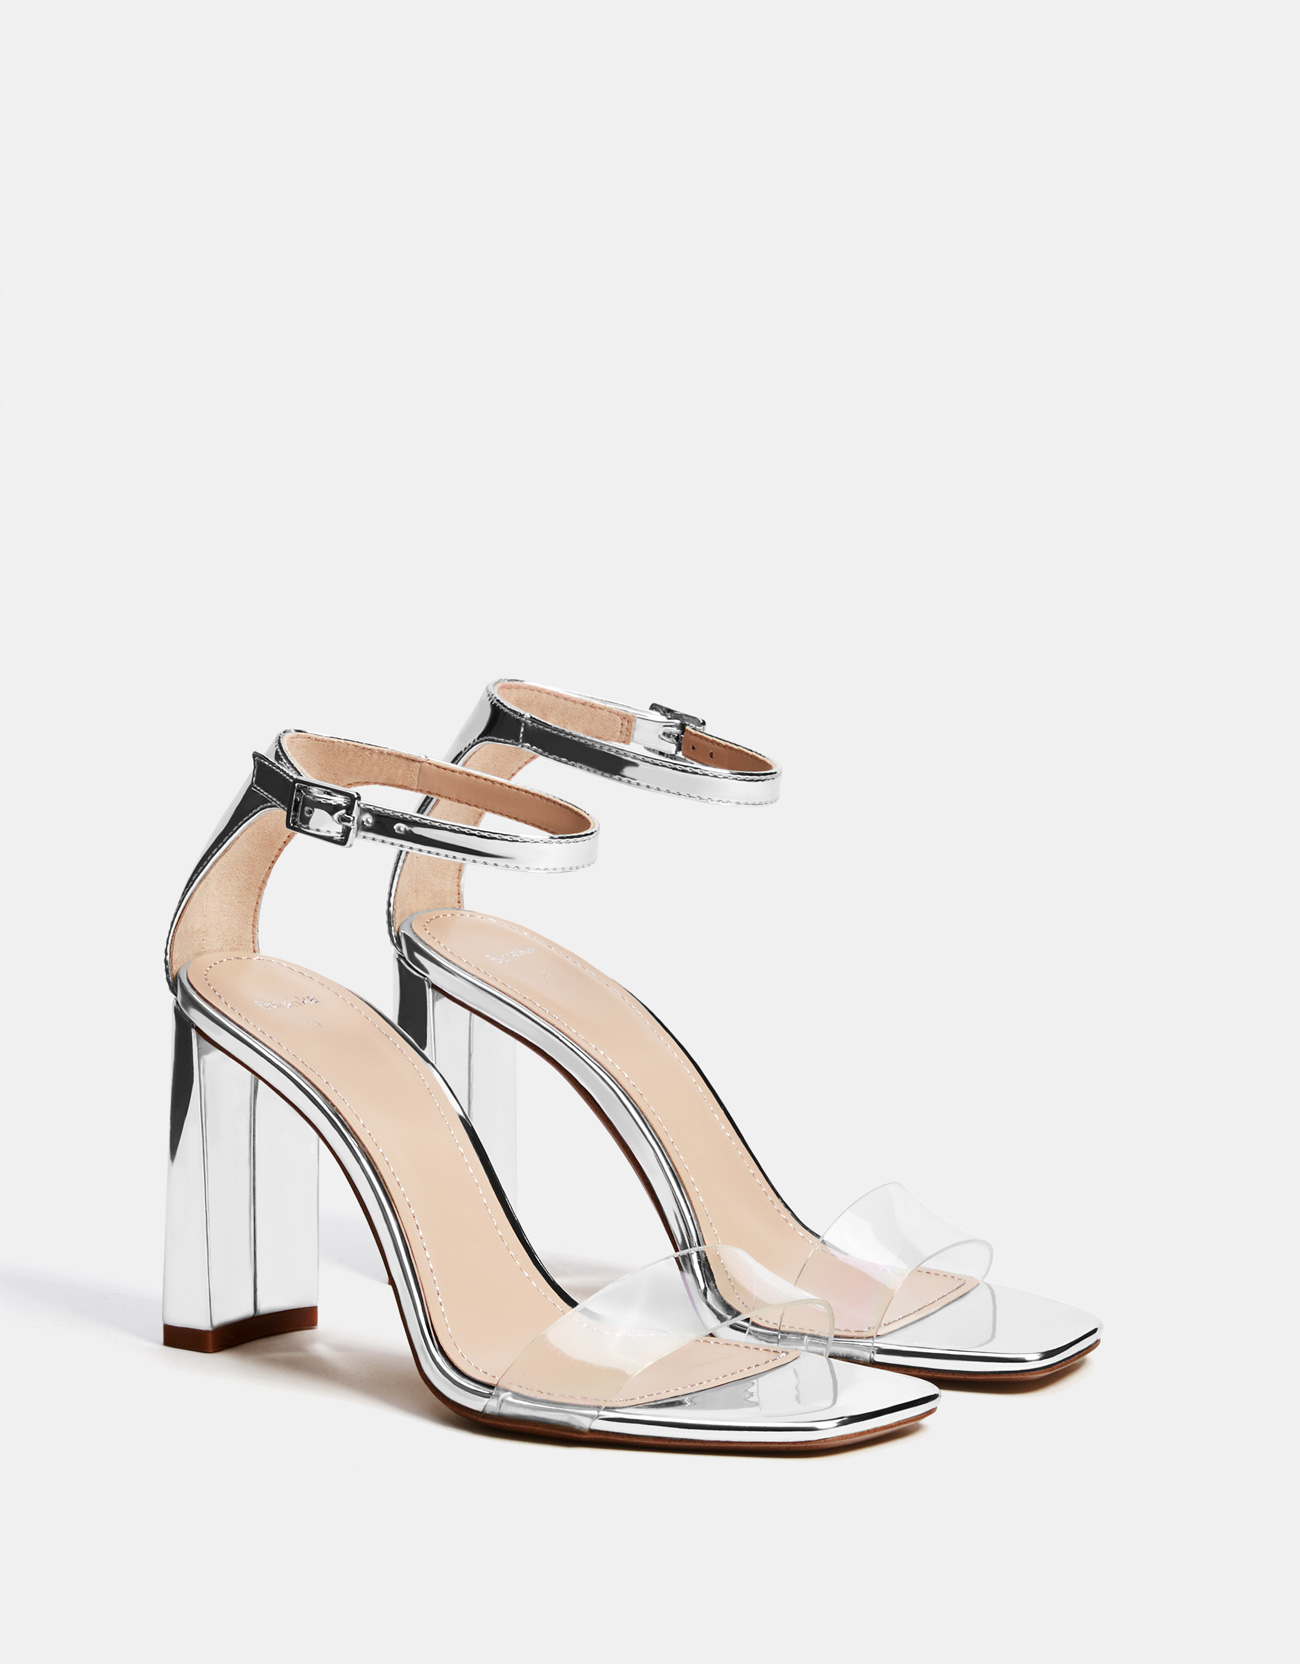 67d88074e89 Metallic high-heel sandals with vinyl strap - Heeled Sandals - Bershka  Macedonia